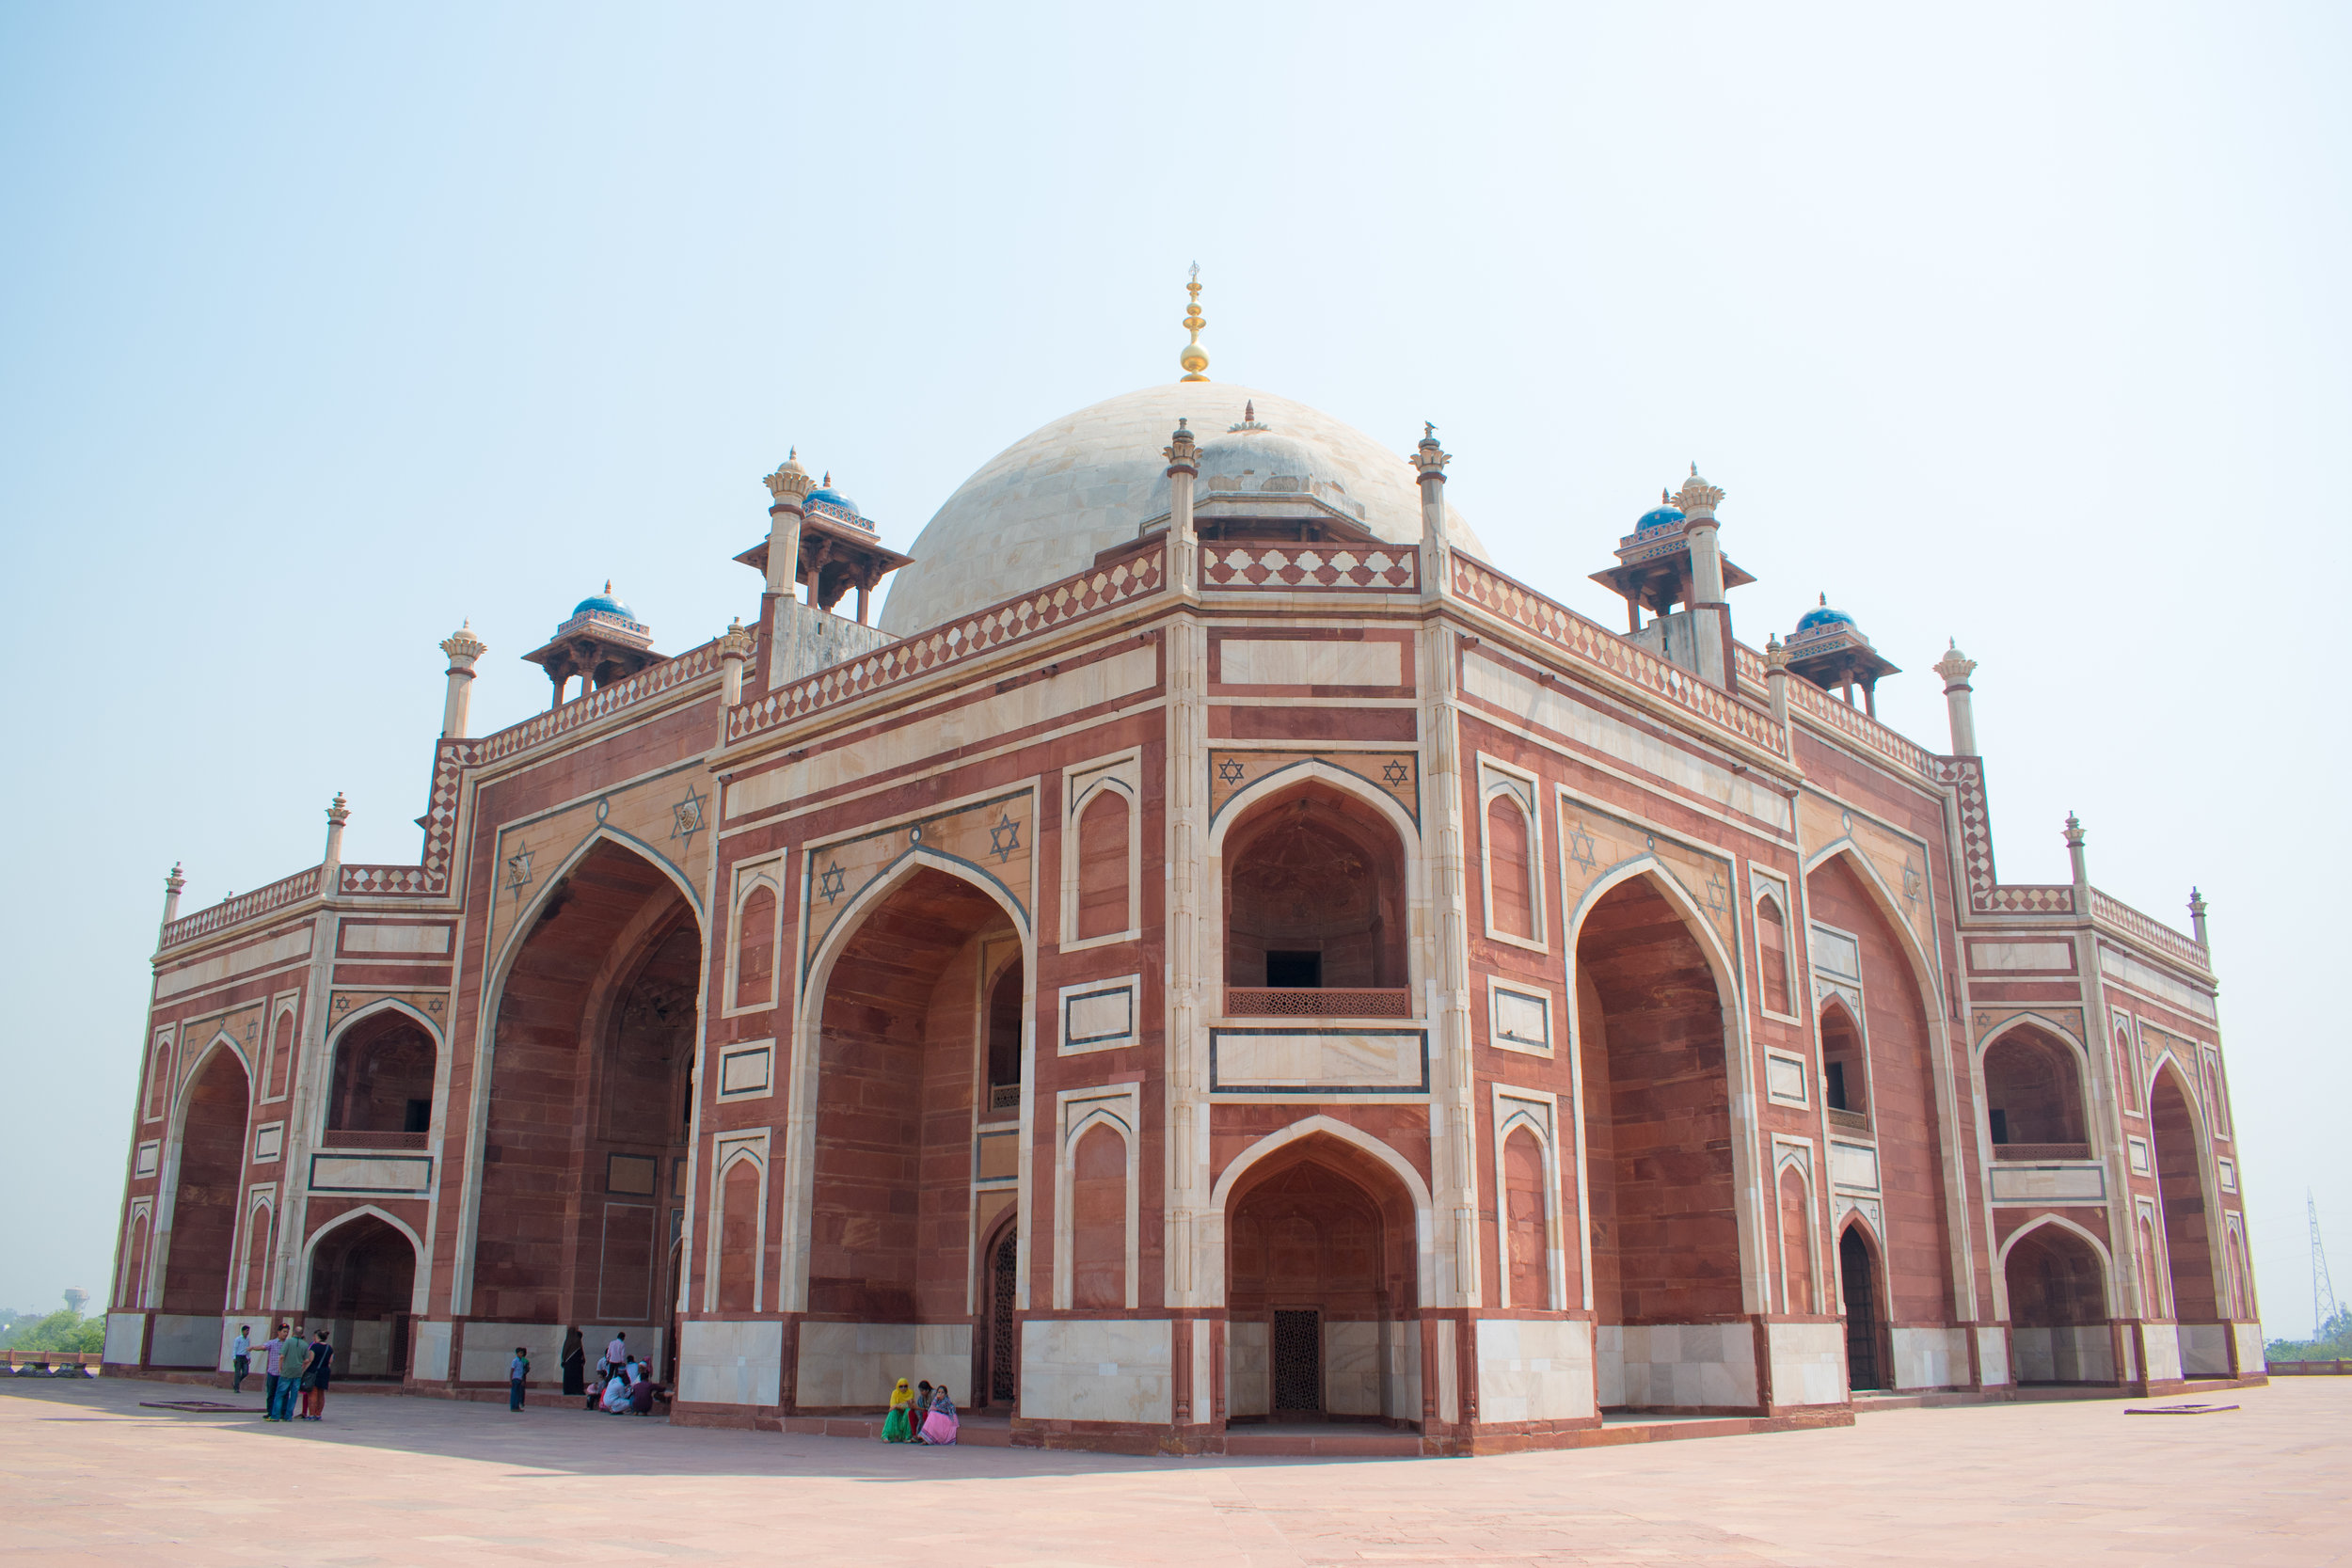 Humayan's Tomb in Delhi, India